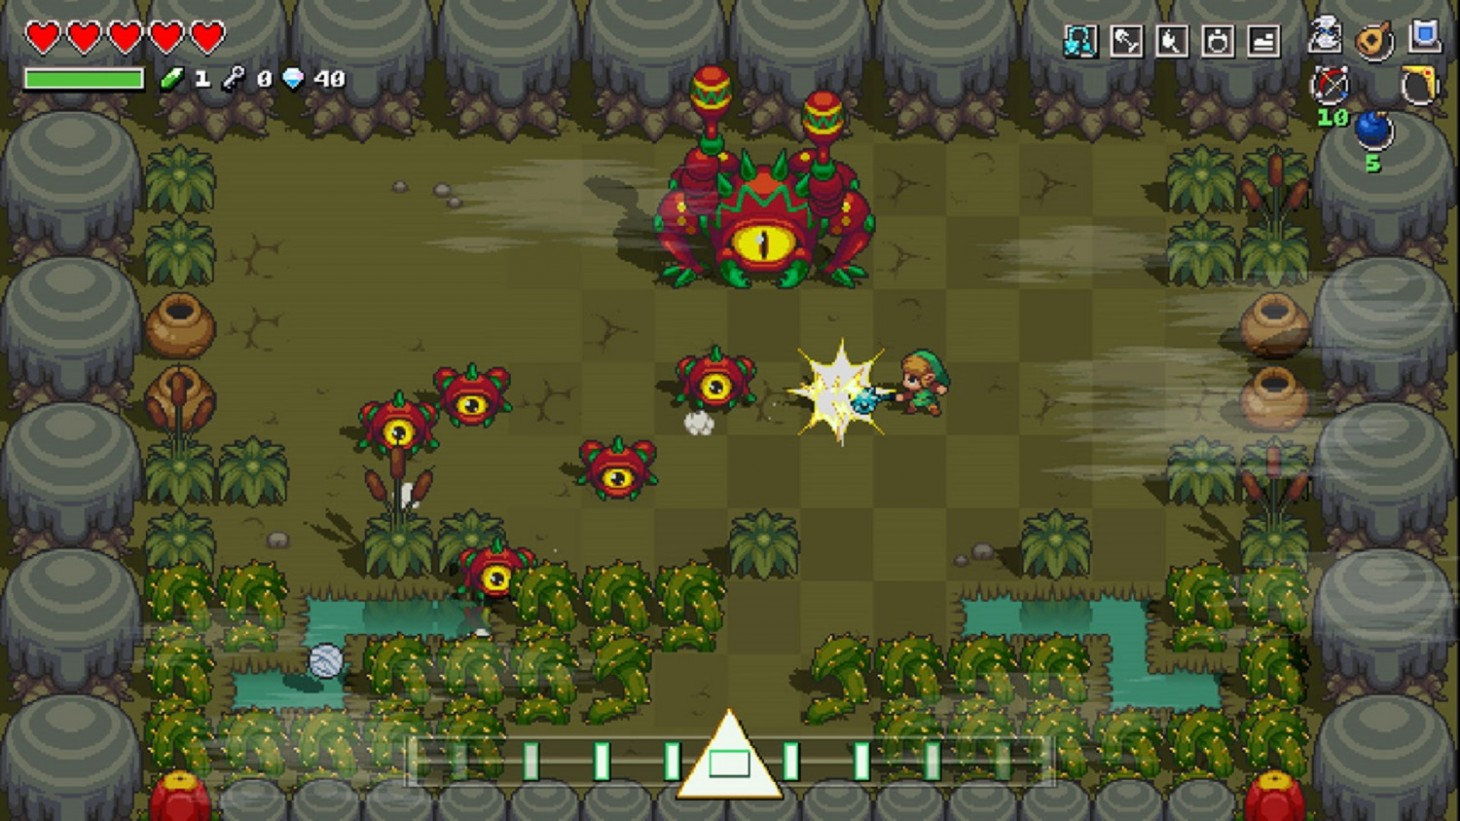 cadence-of-hyrule-crypt-of-the-necrodancer-featuring-the-legend-of-zelda-switch-screenshot02.jpg